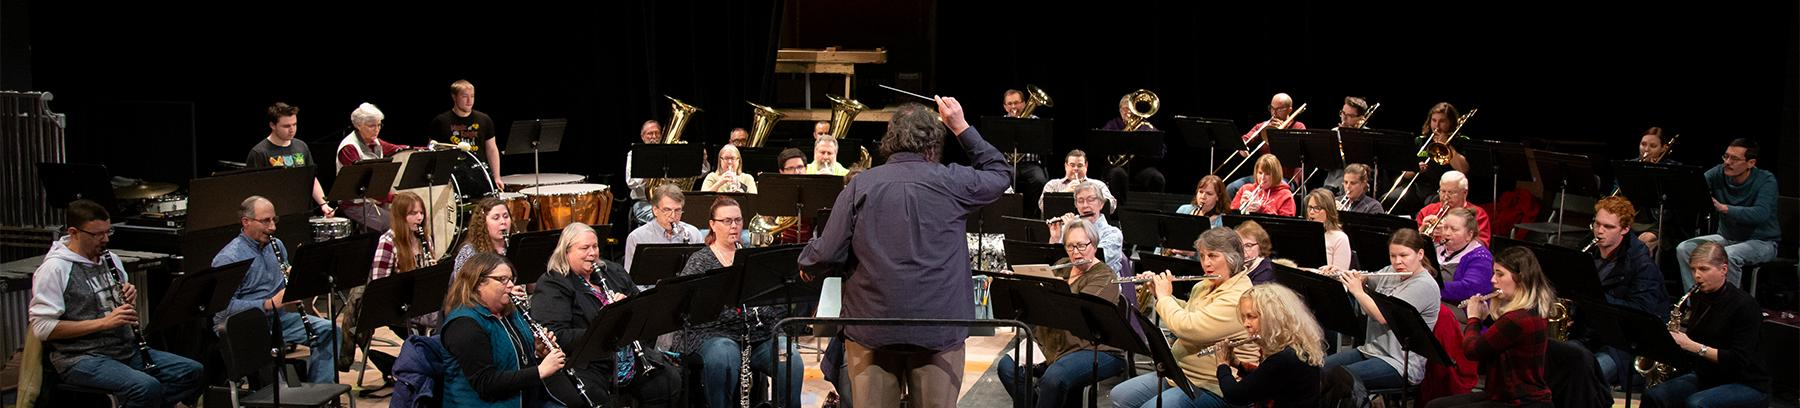 Wide shot of a band playing music with conductor leading